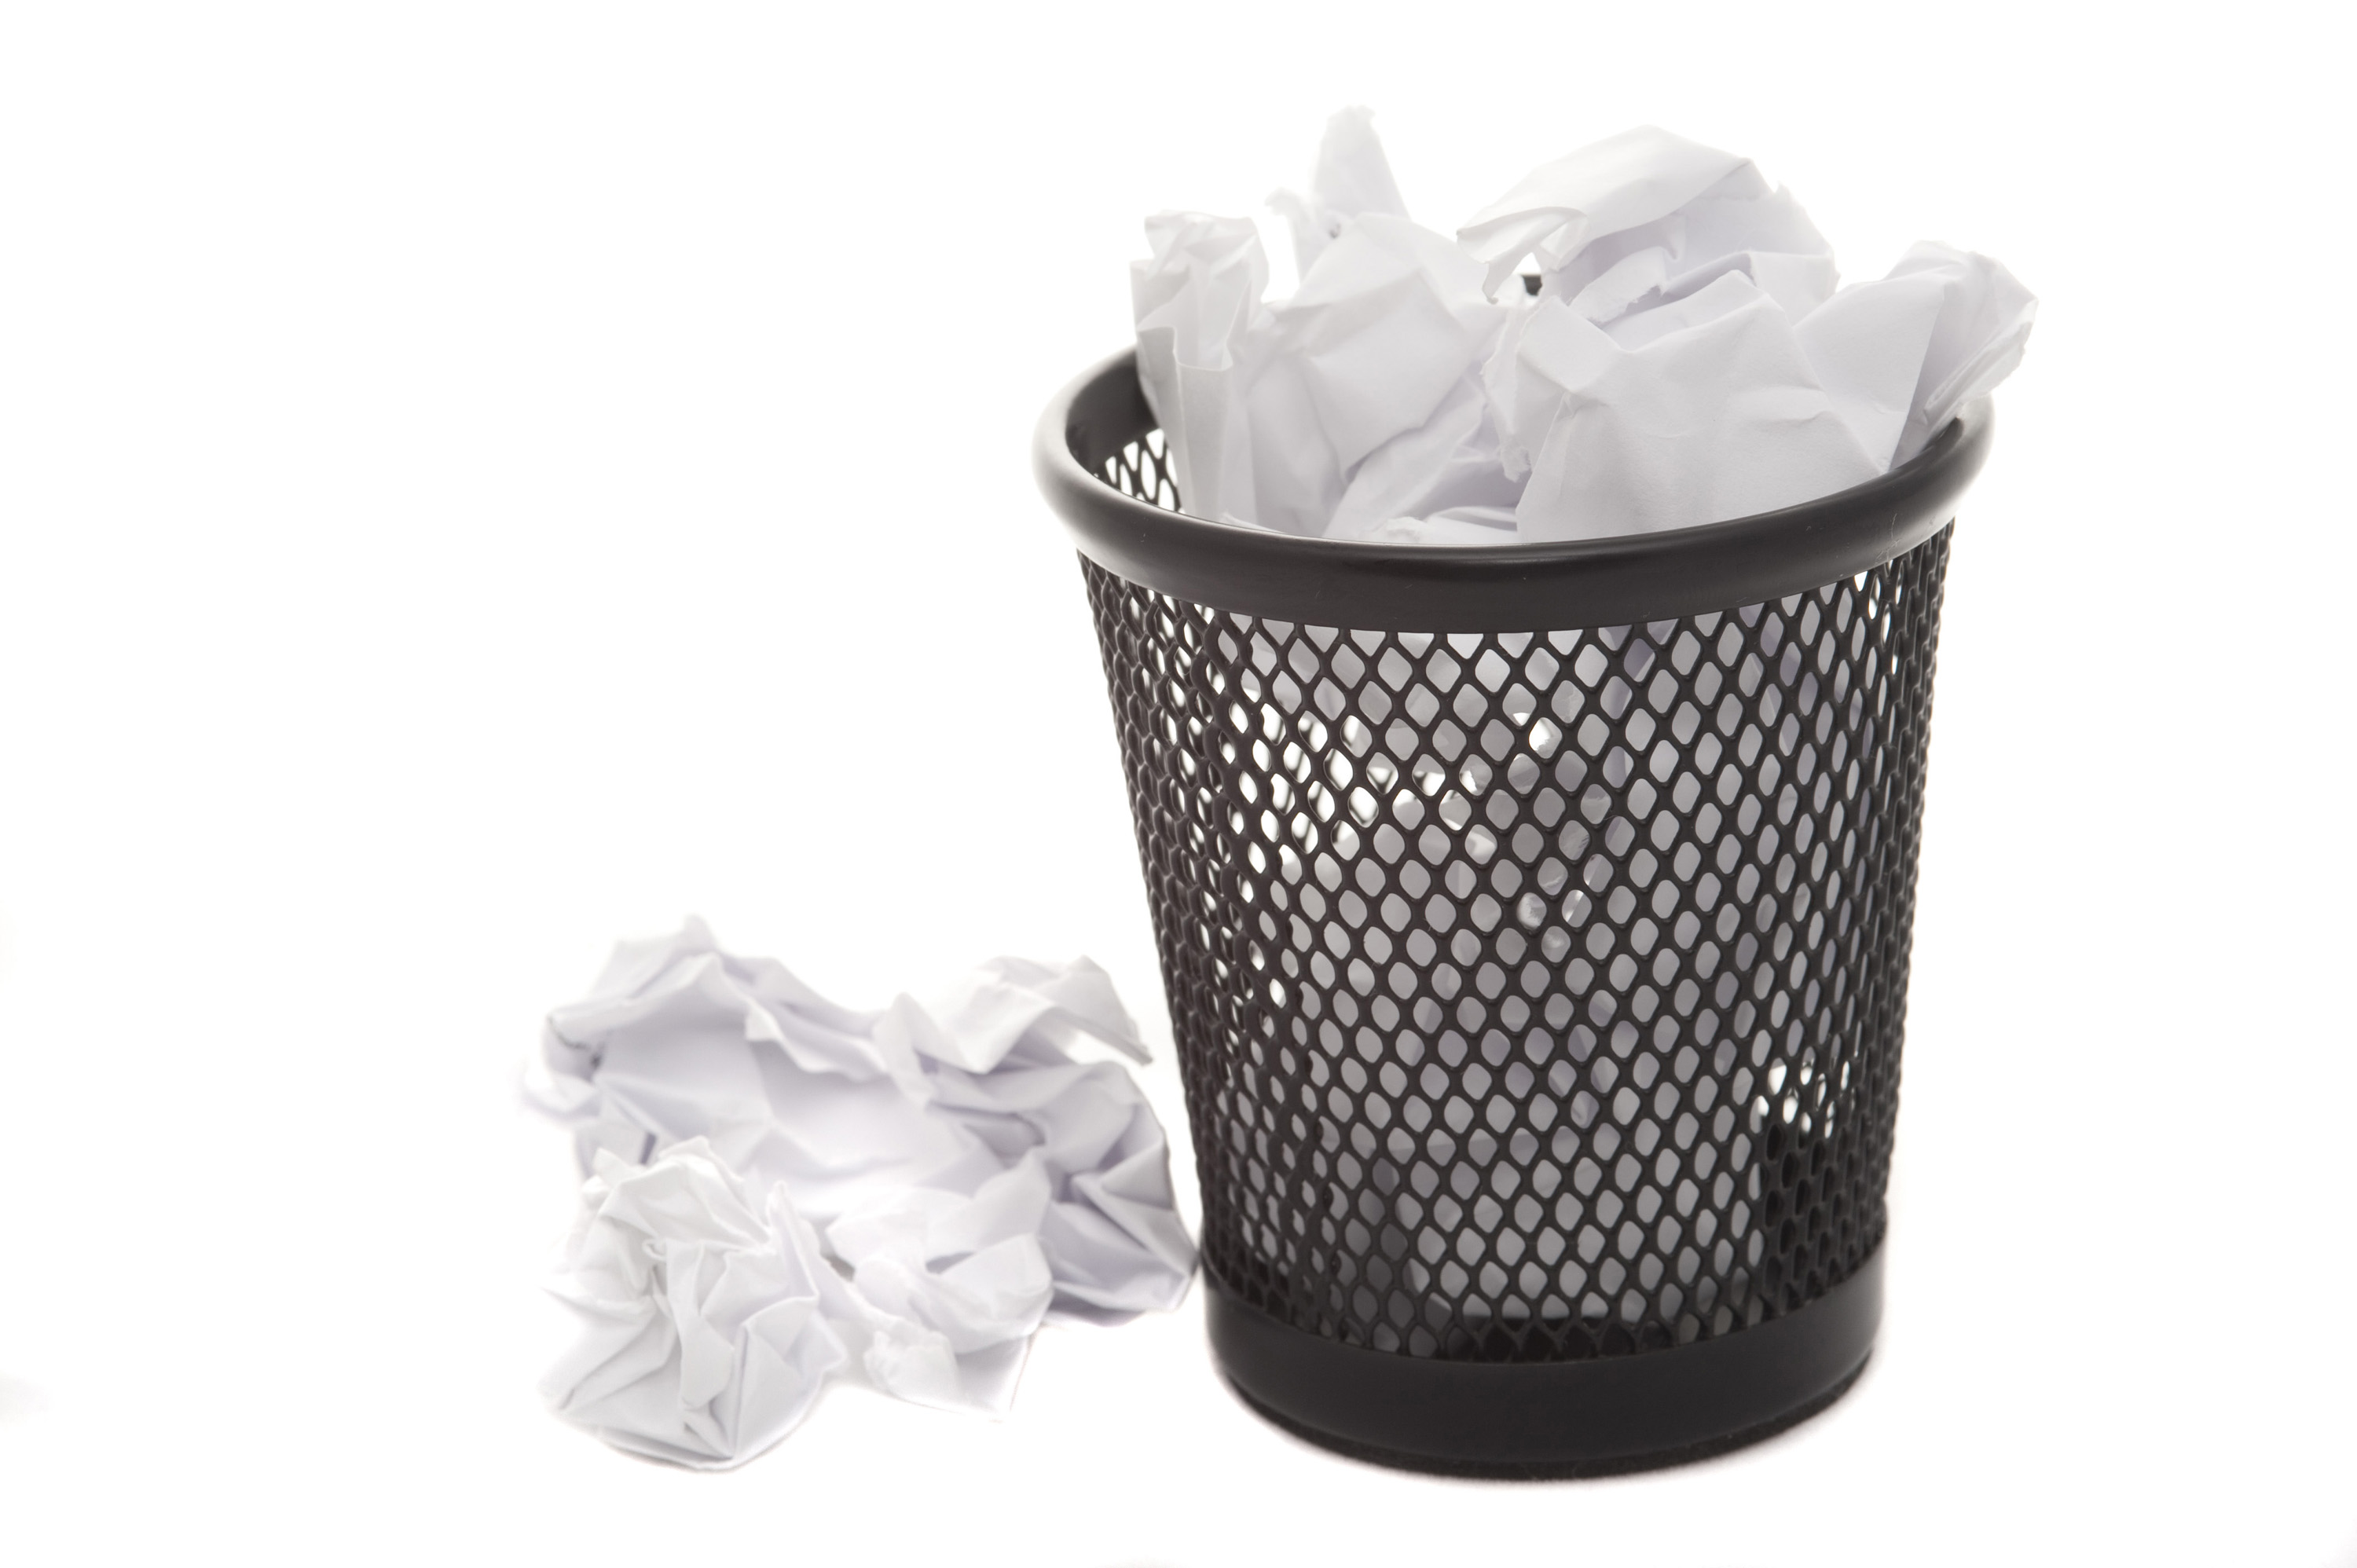 Wastepaper Basket Classy Free Image Of Wastepaper Basket Filled With Crumpled Paper Design Inspiration